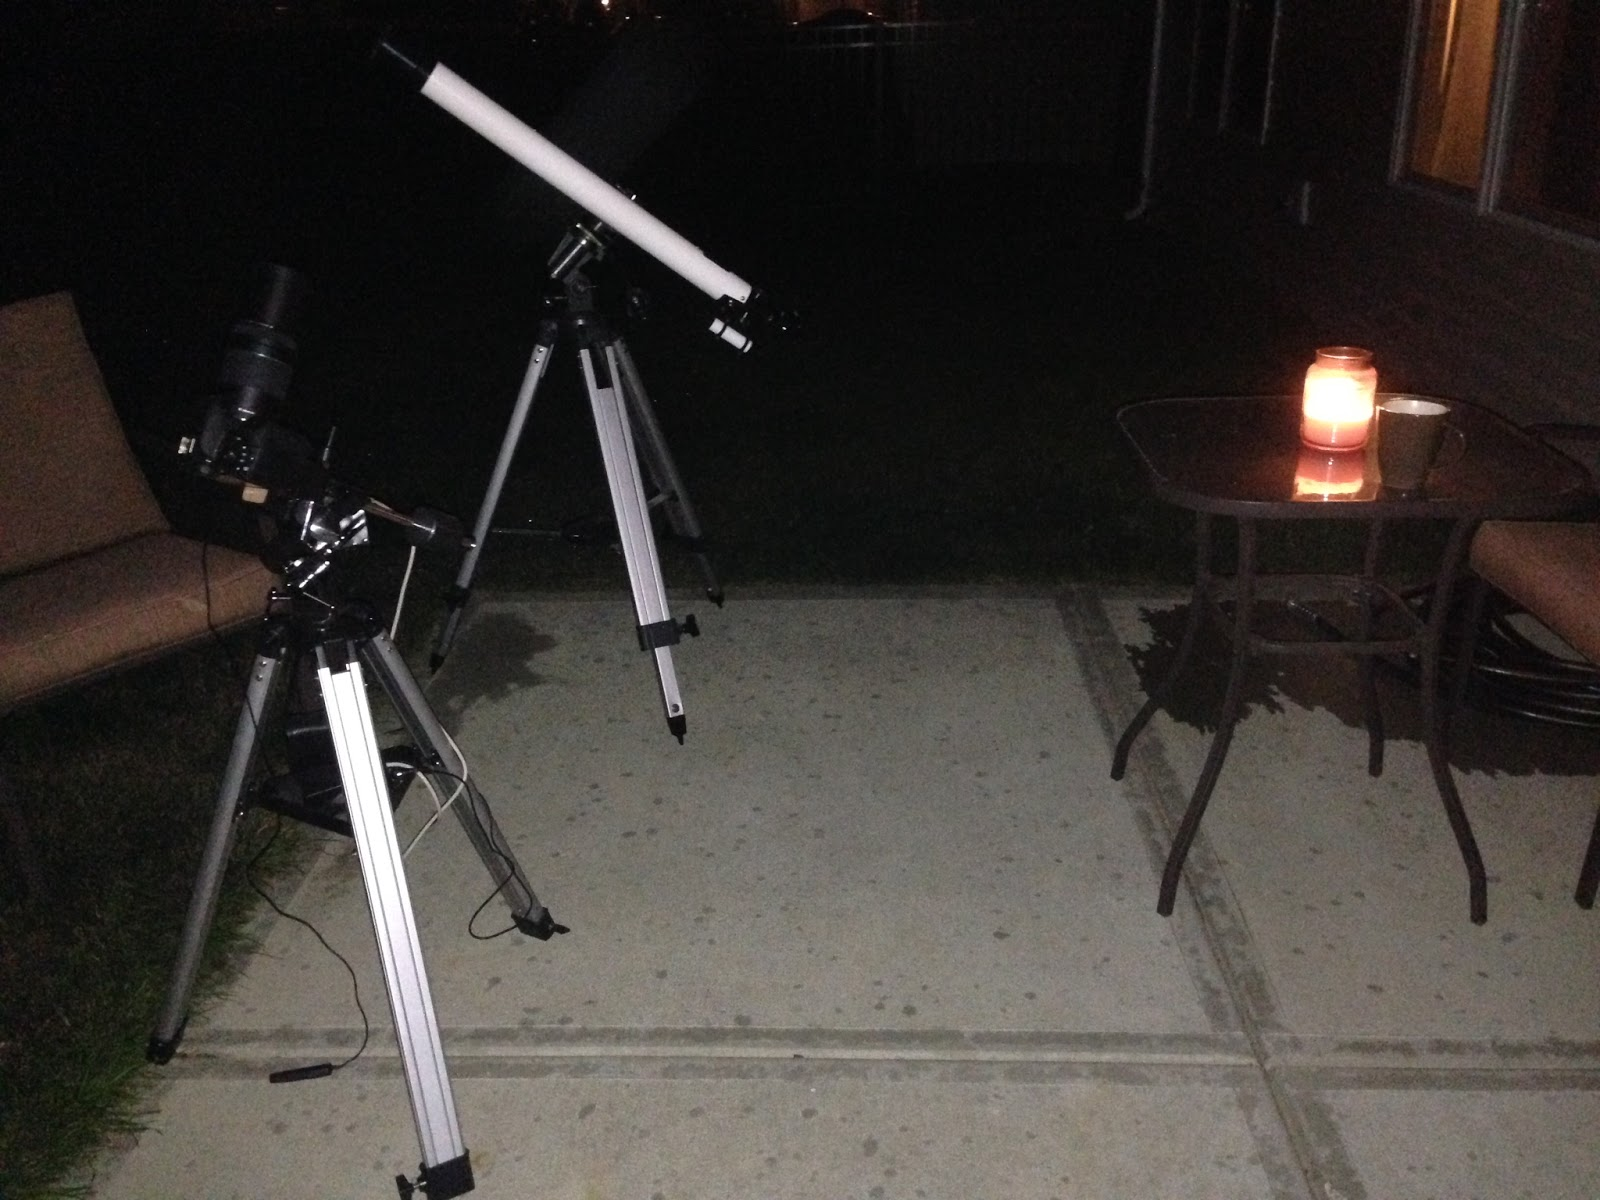 back patio observing with telescope